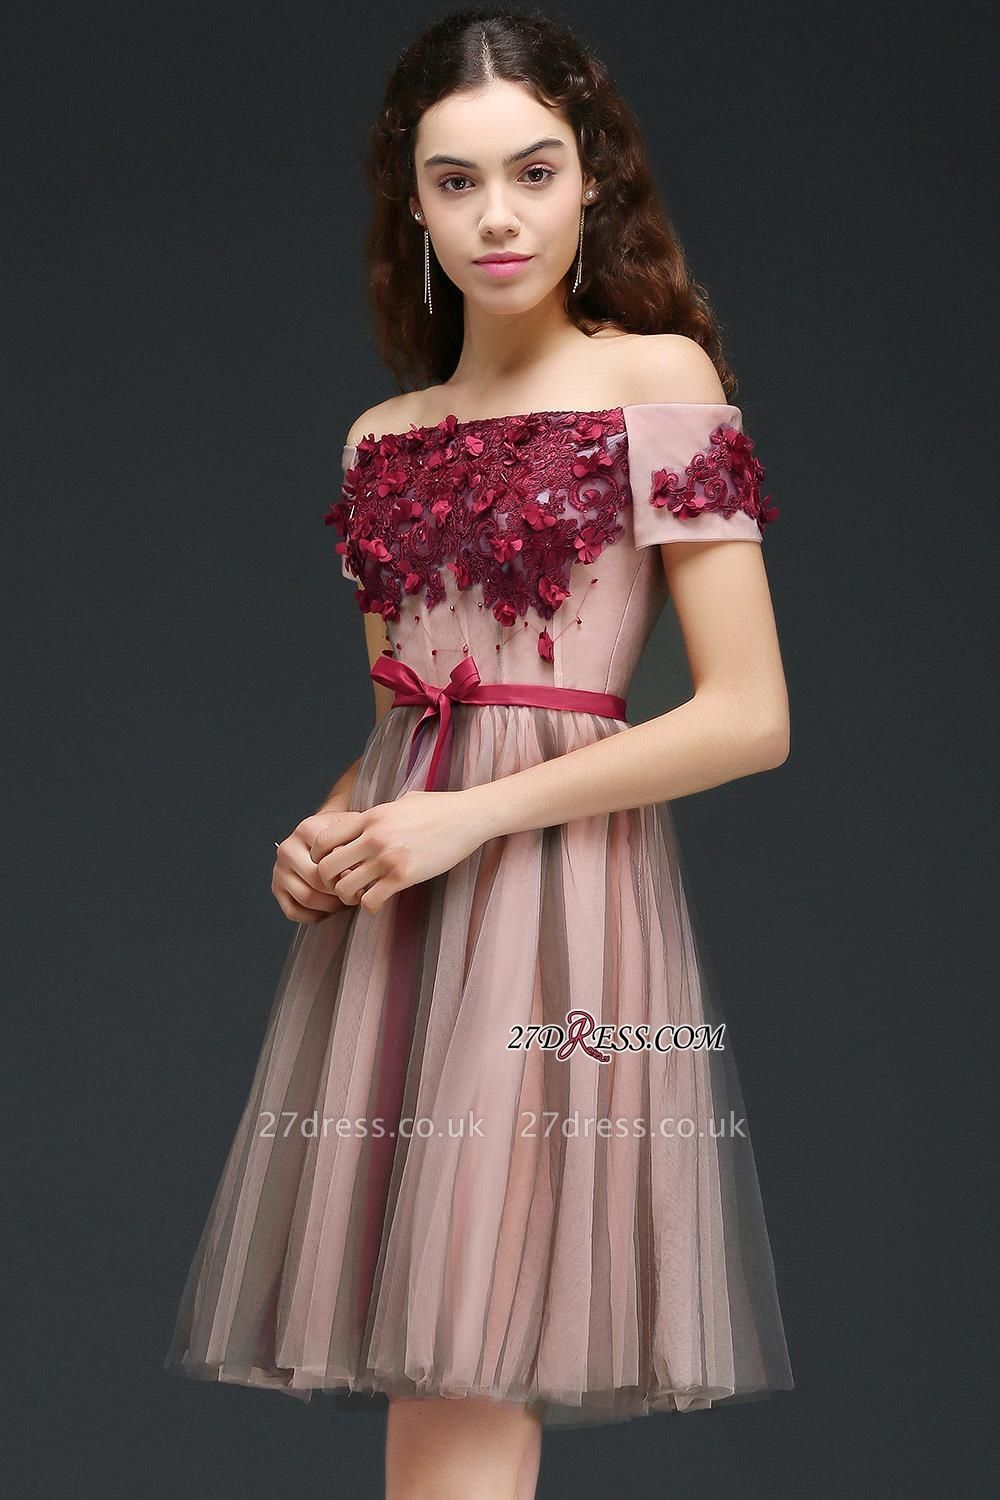 Knee-Length Burgundy-Flowers Off-the-Shoulder Short-Sleeves Homecoming Dress UKes UK